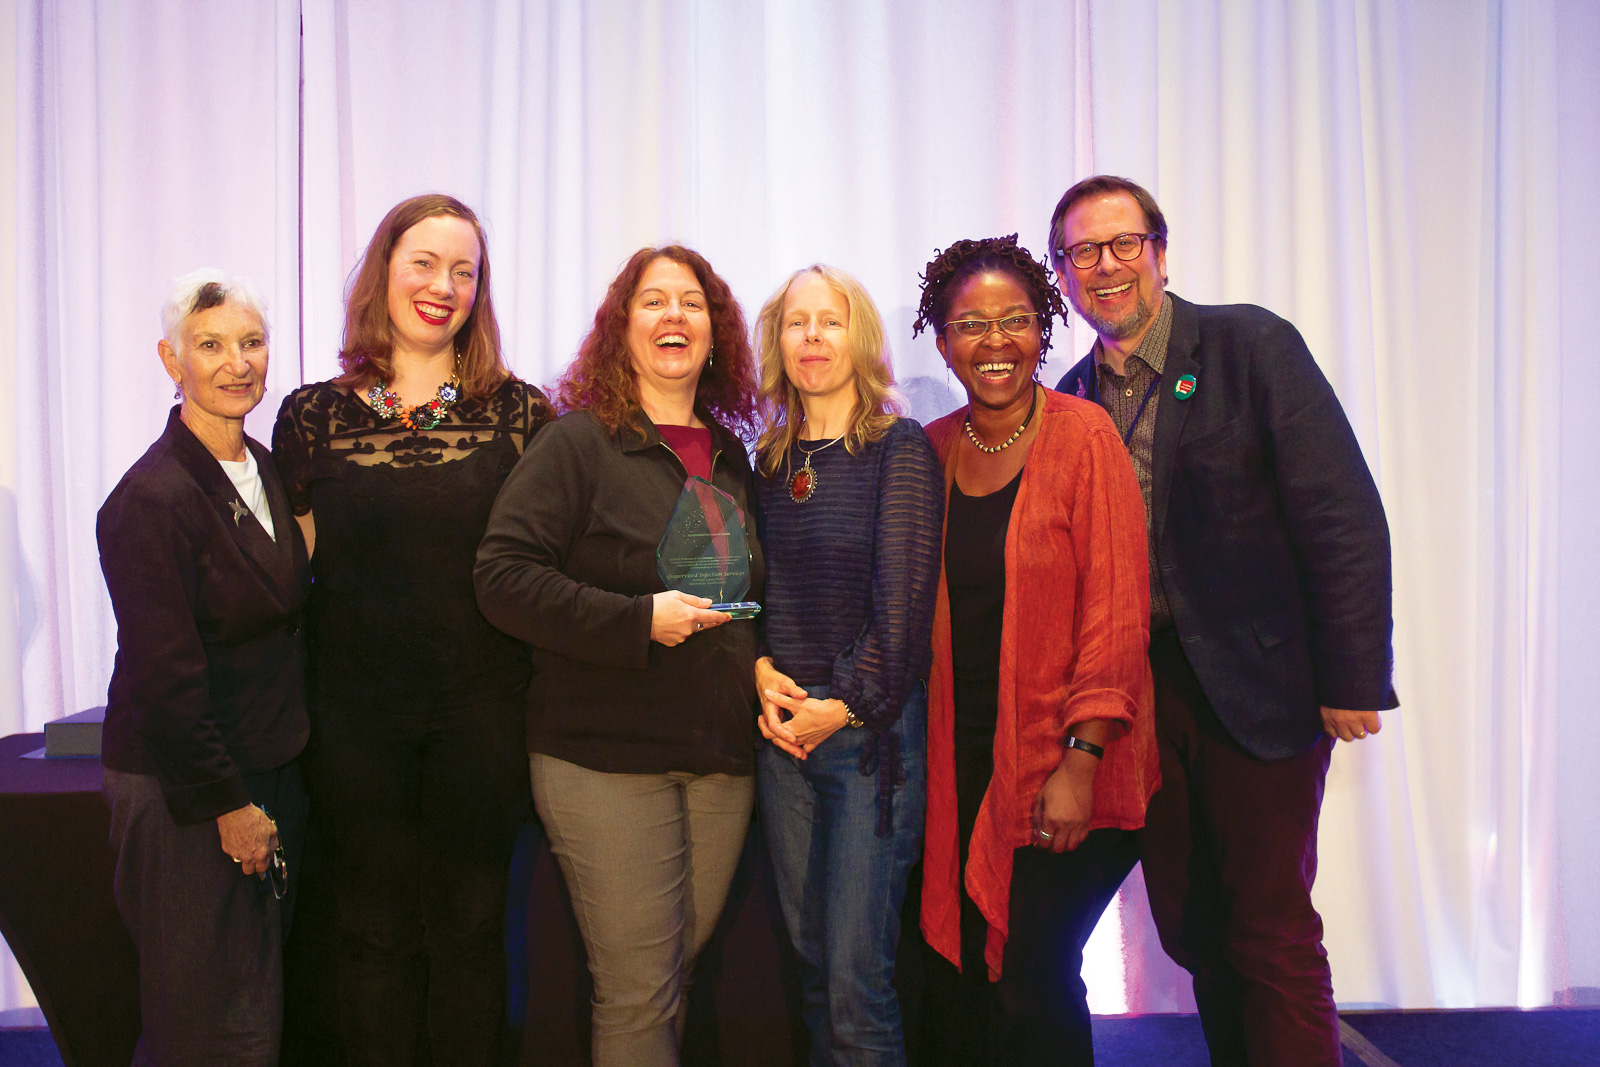 Upon accepting the Transformative Change Award received for work on Supervised Injection Services